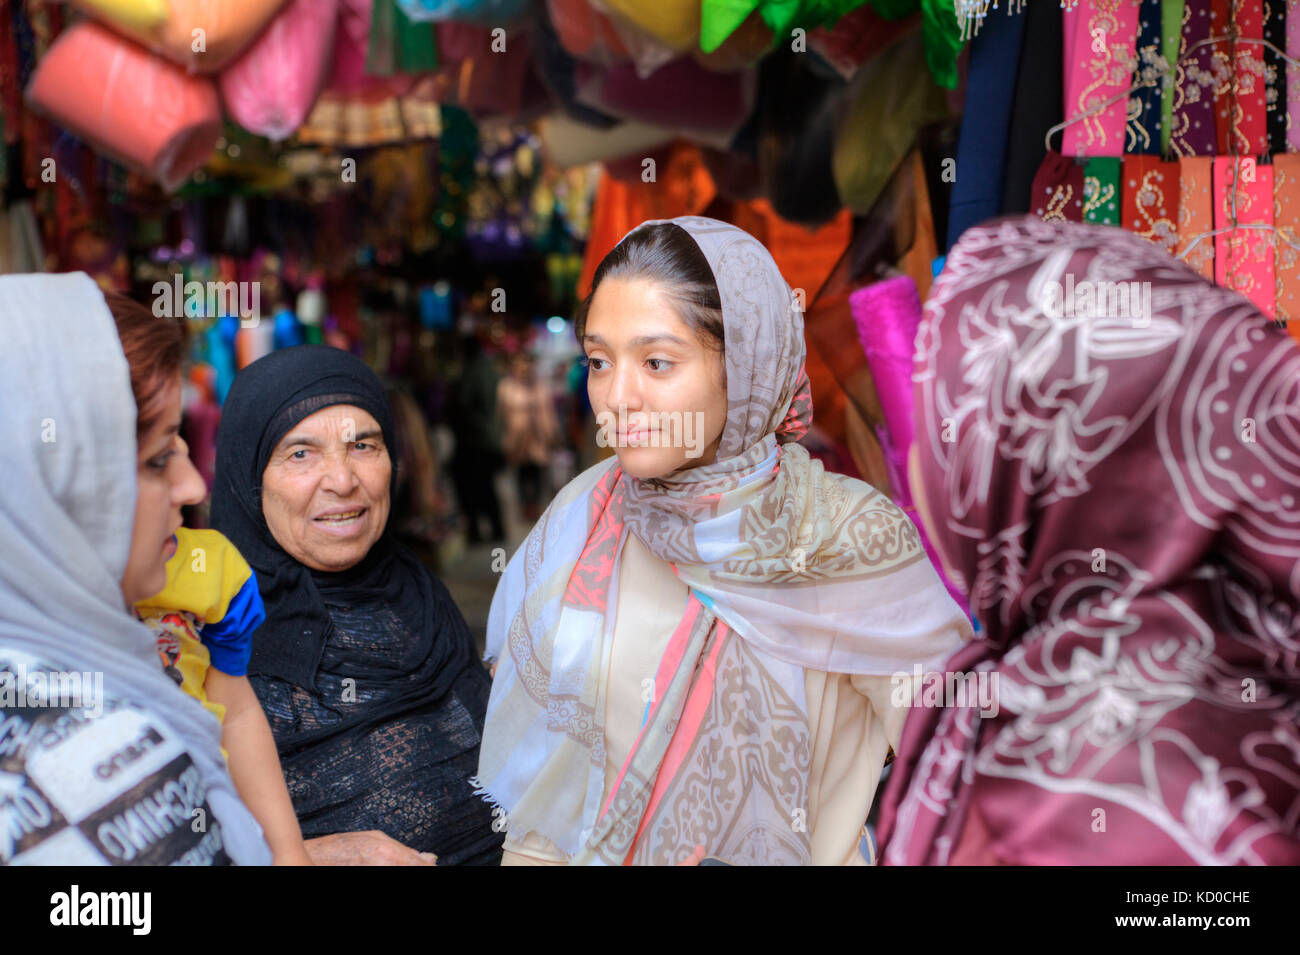 muslim single women in persia Today the women's dress code in iran is way more conservative than back in the '70s now, they need to cover their hair, necks, and arms nevertheless, iranian women are generally stylish and tend to choose colorful outfits.